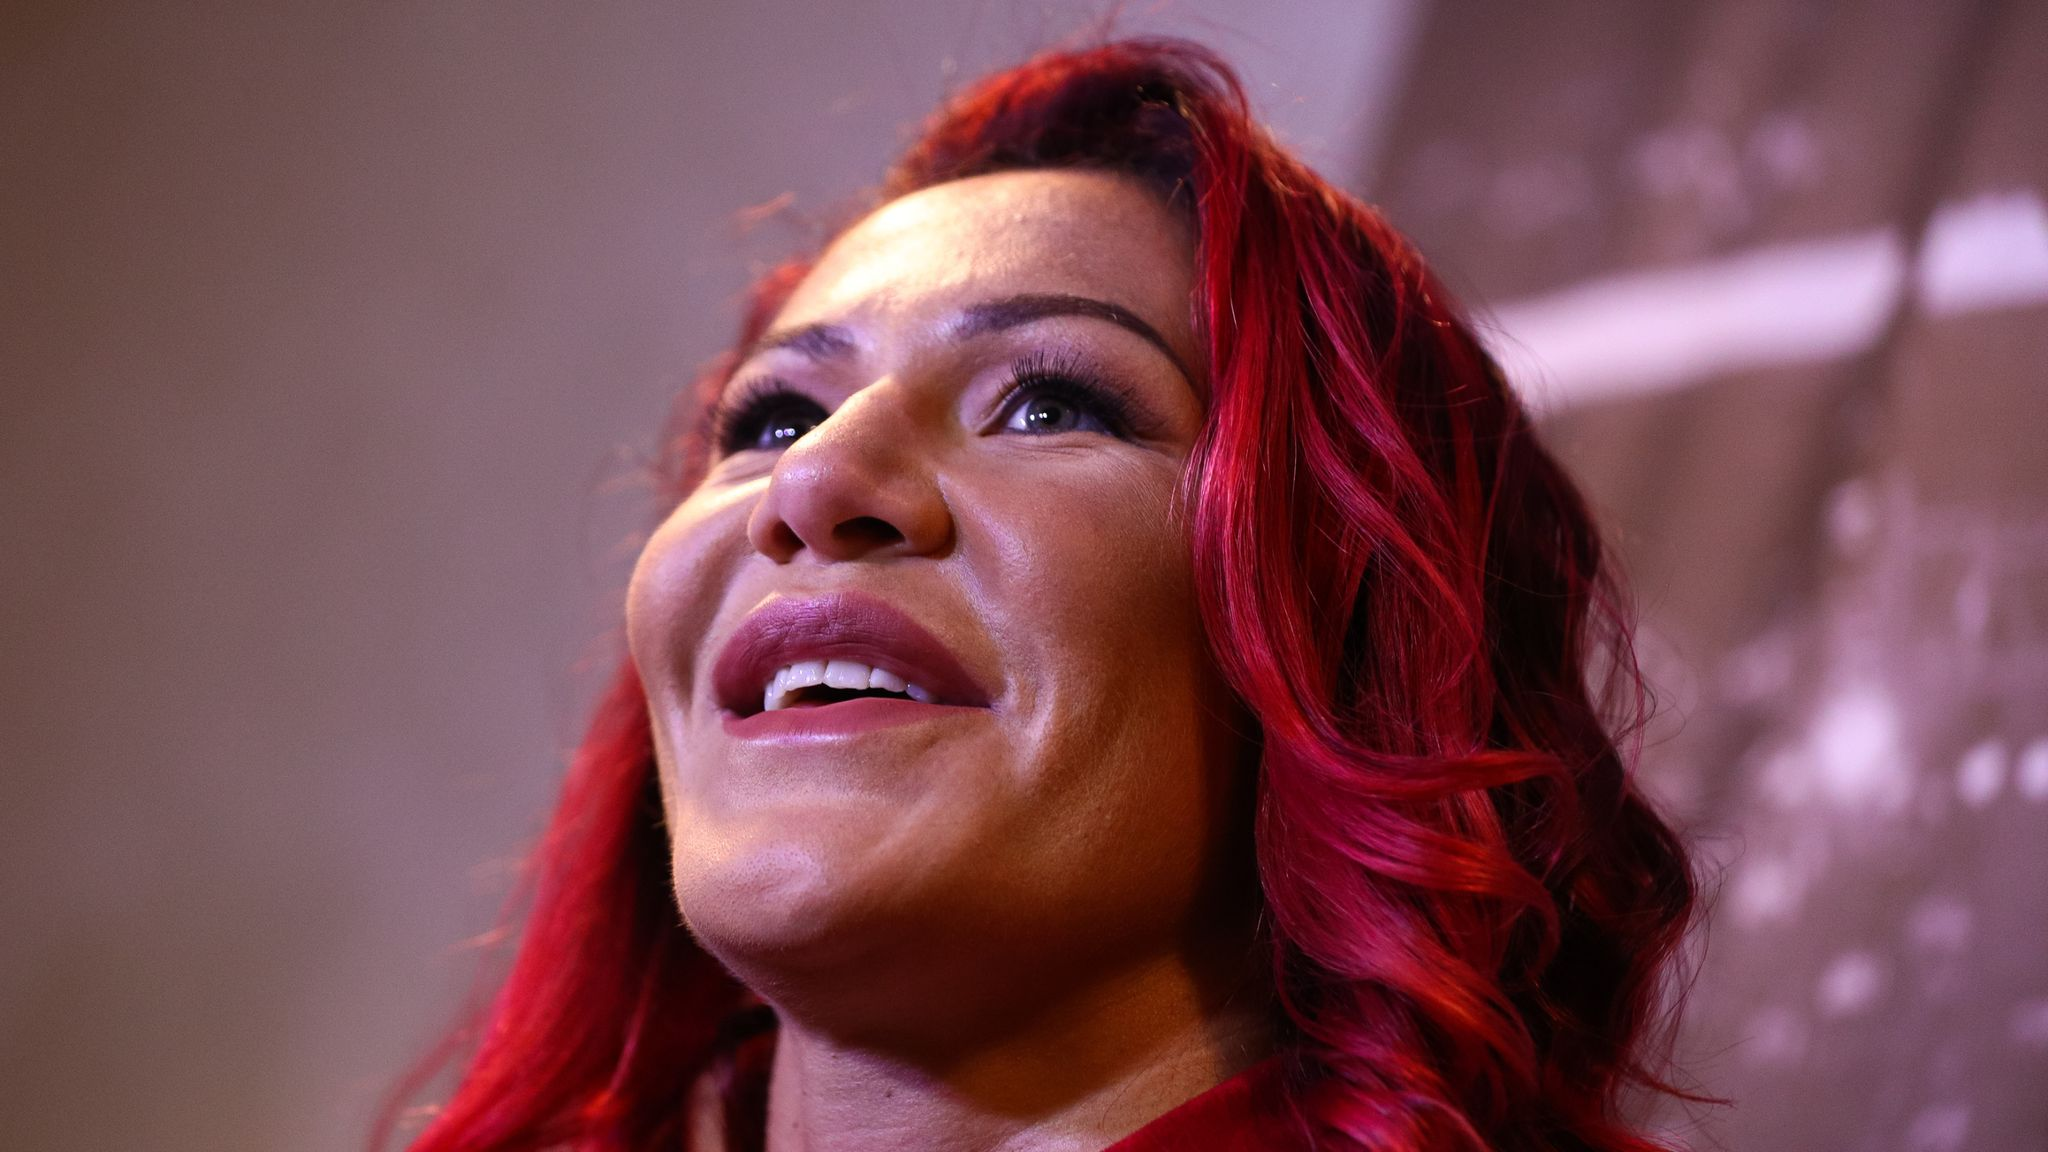 Bellator sign Cristiane 'Cyborg' Justino to multi-year, multi-fight deal